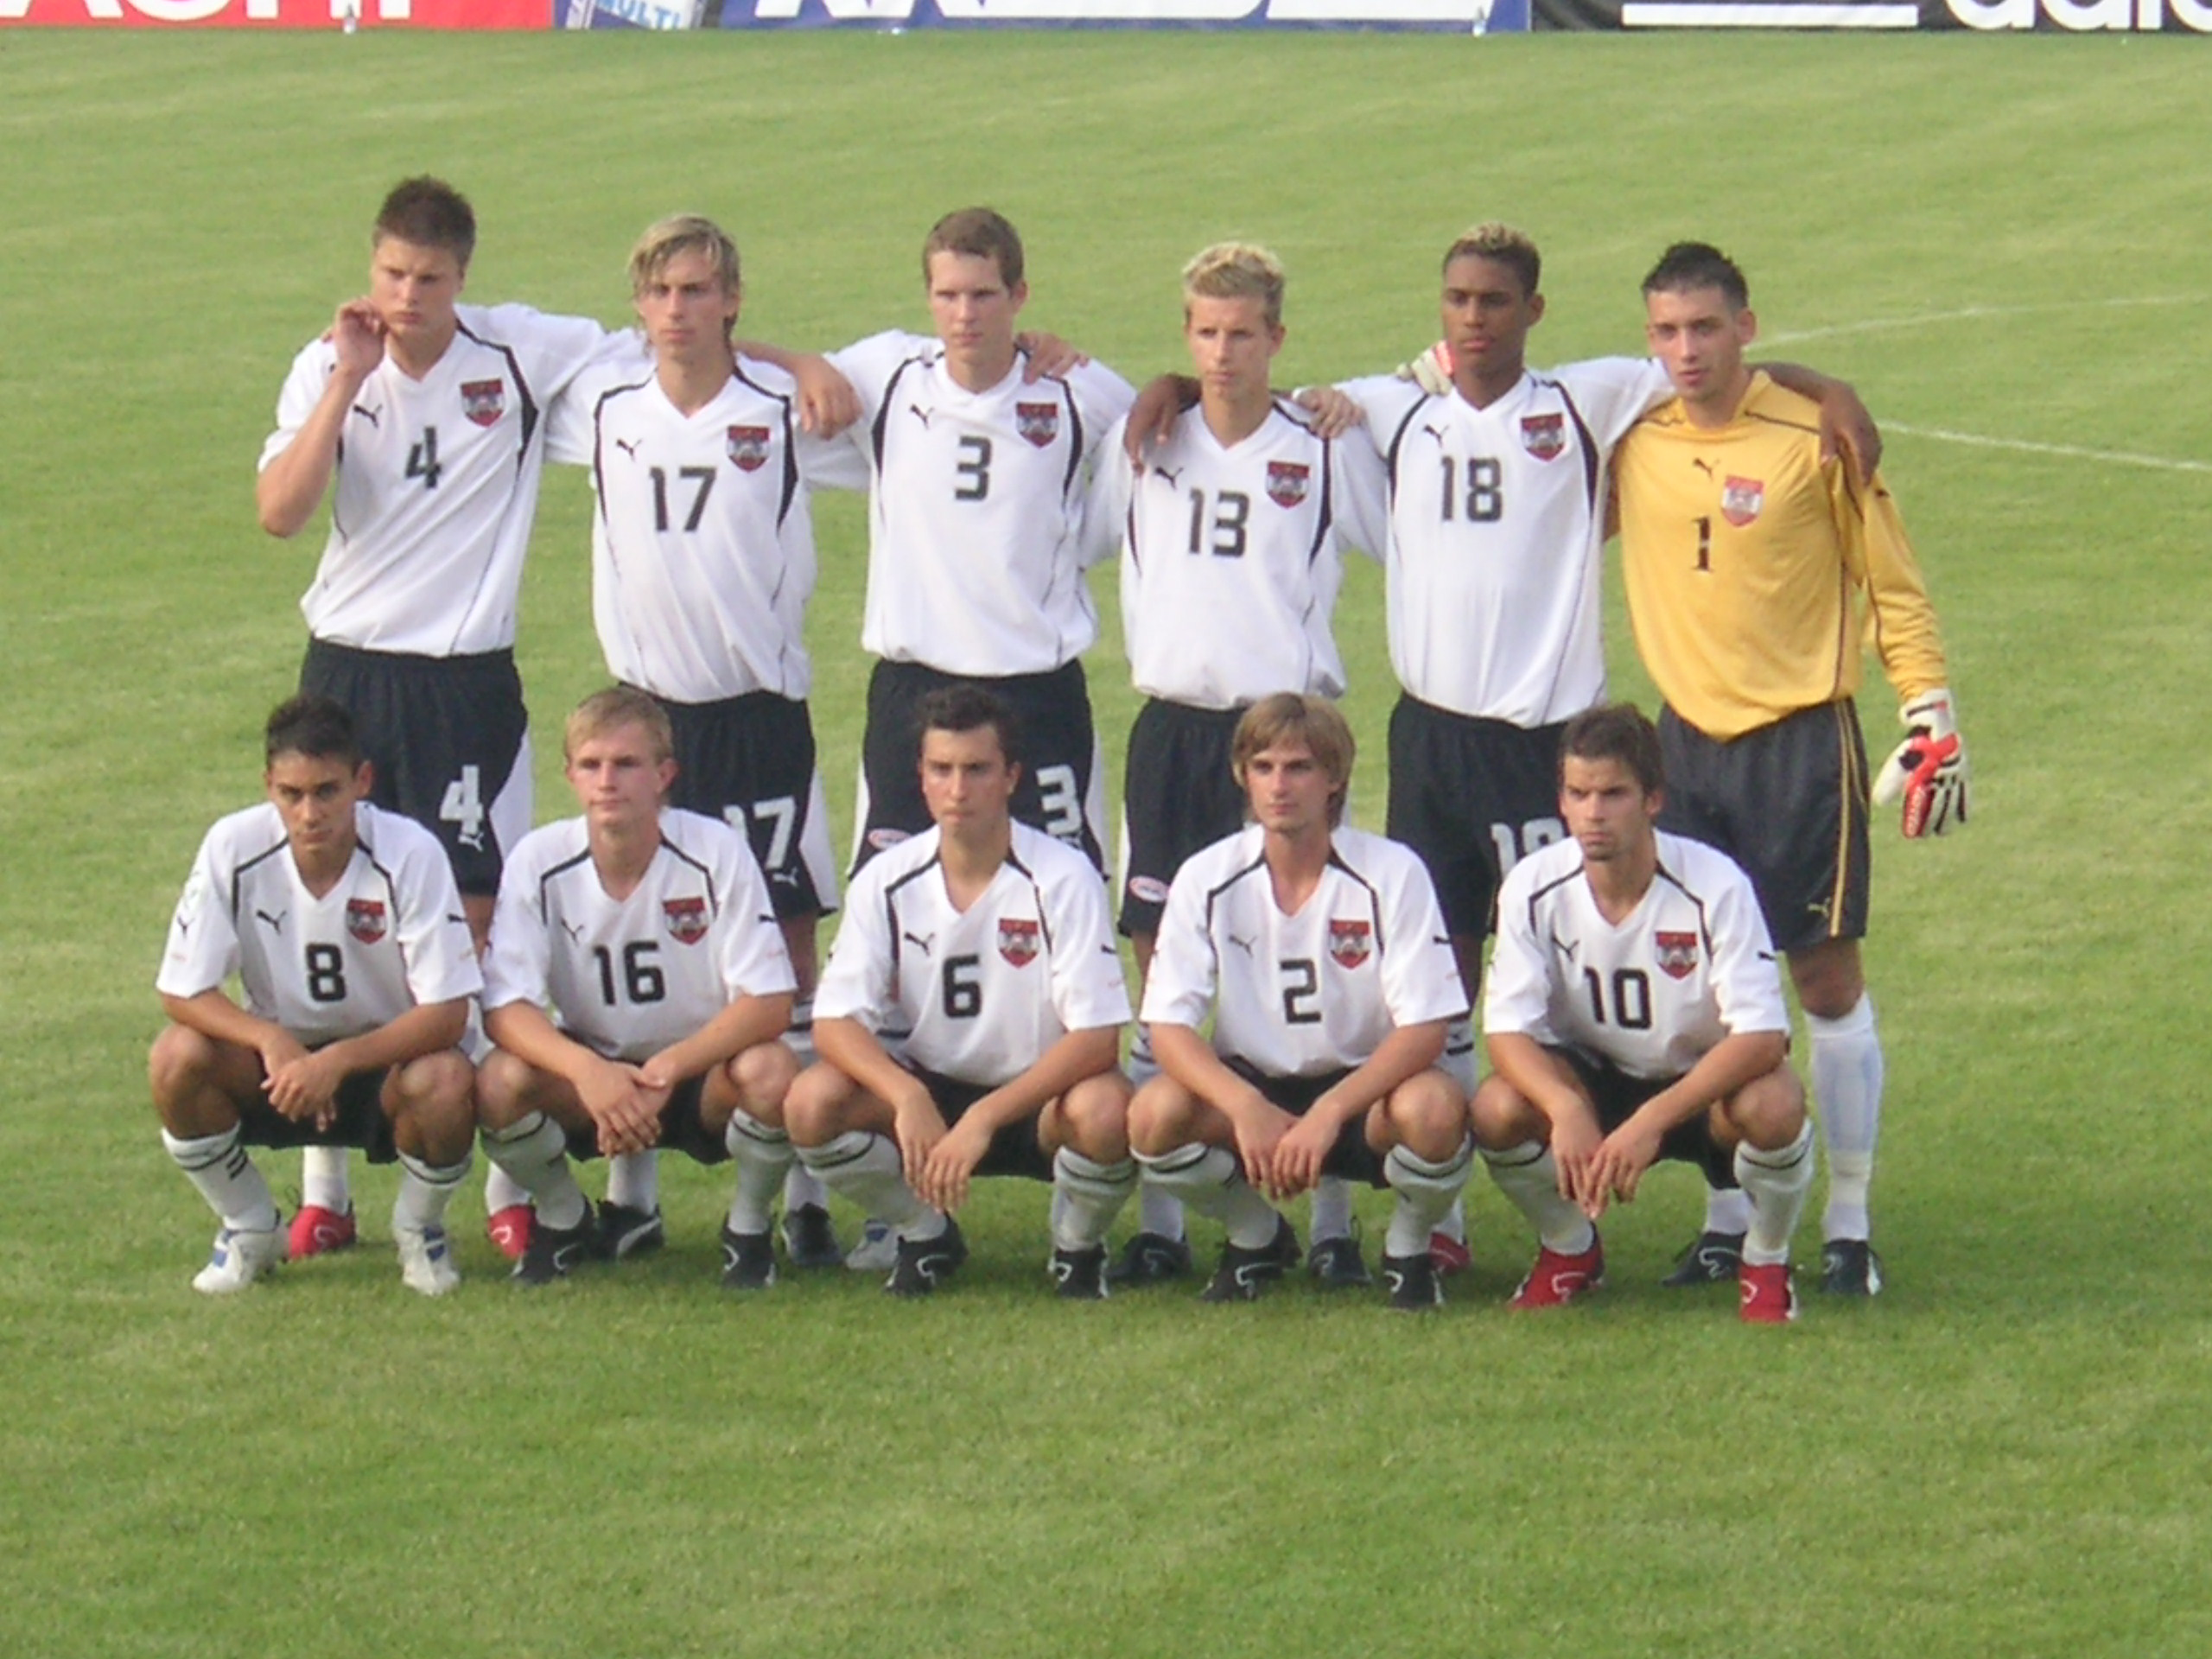 Peter Hackmair with the Austrian U17 national team (© private archives).